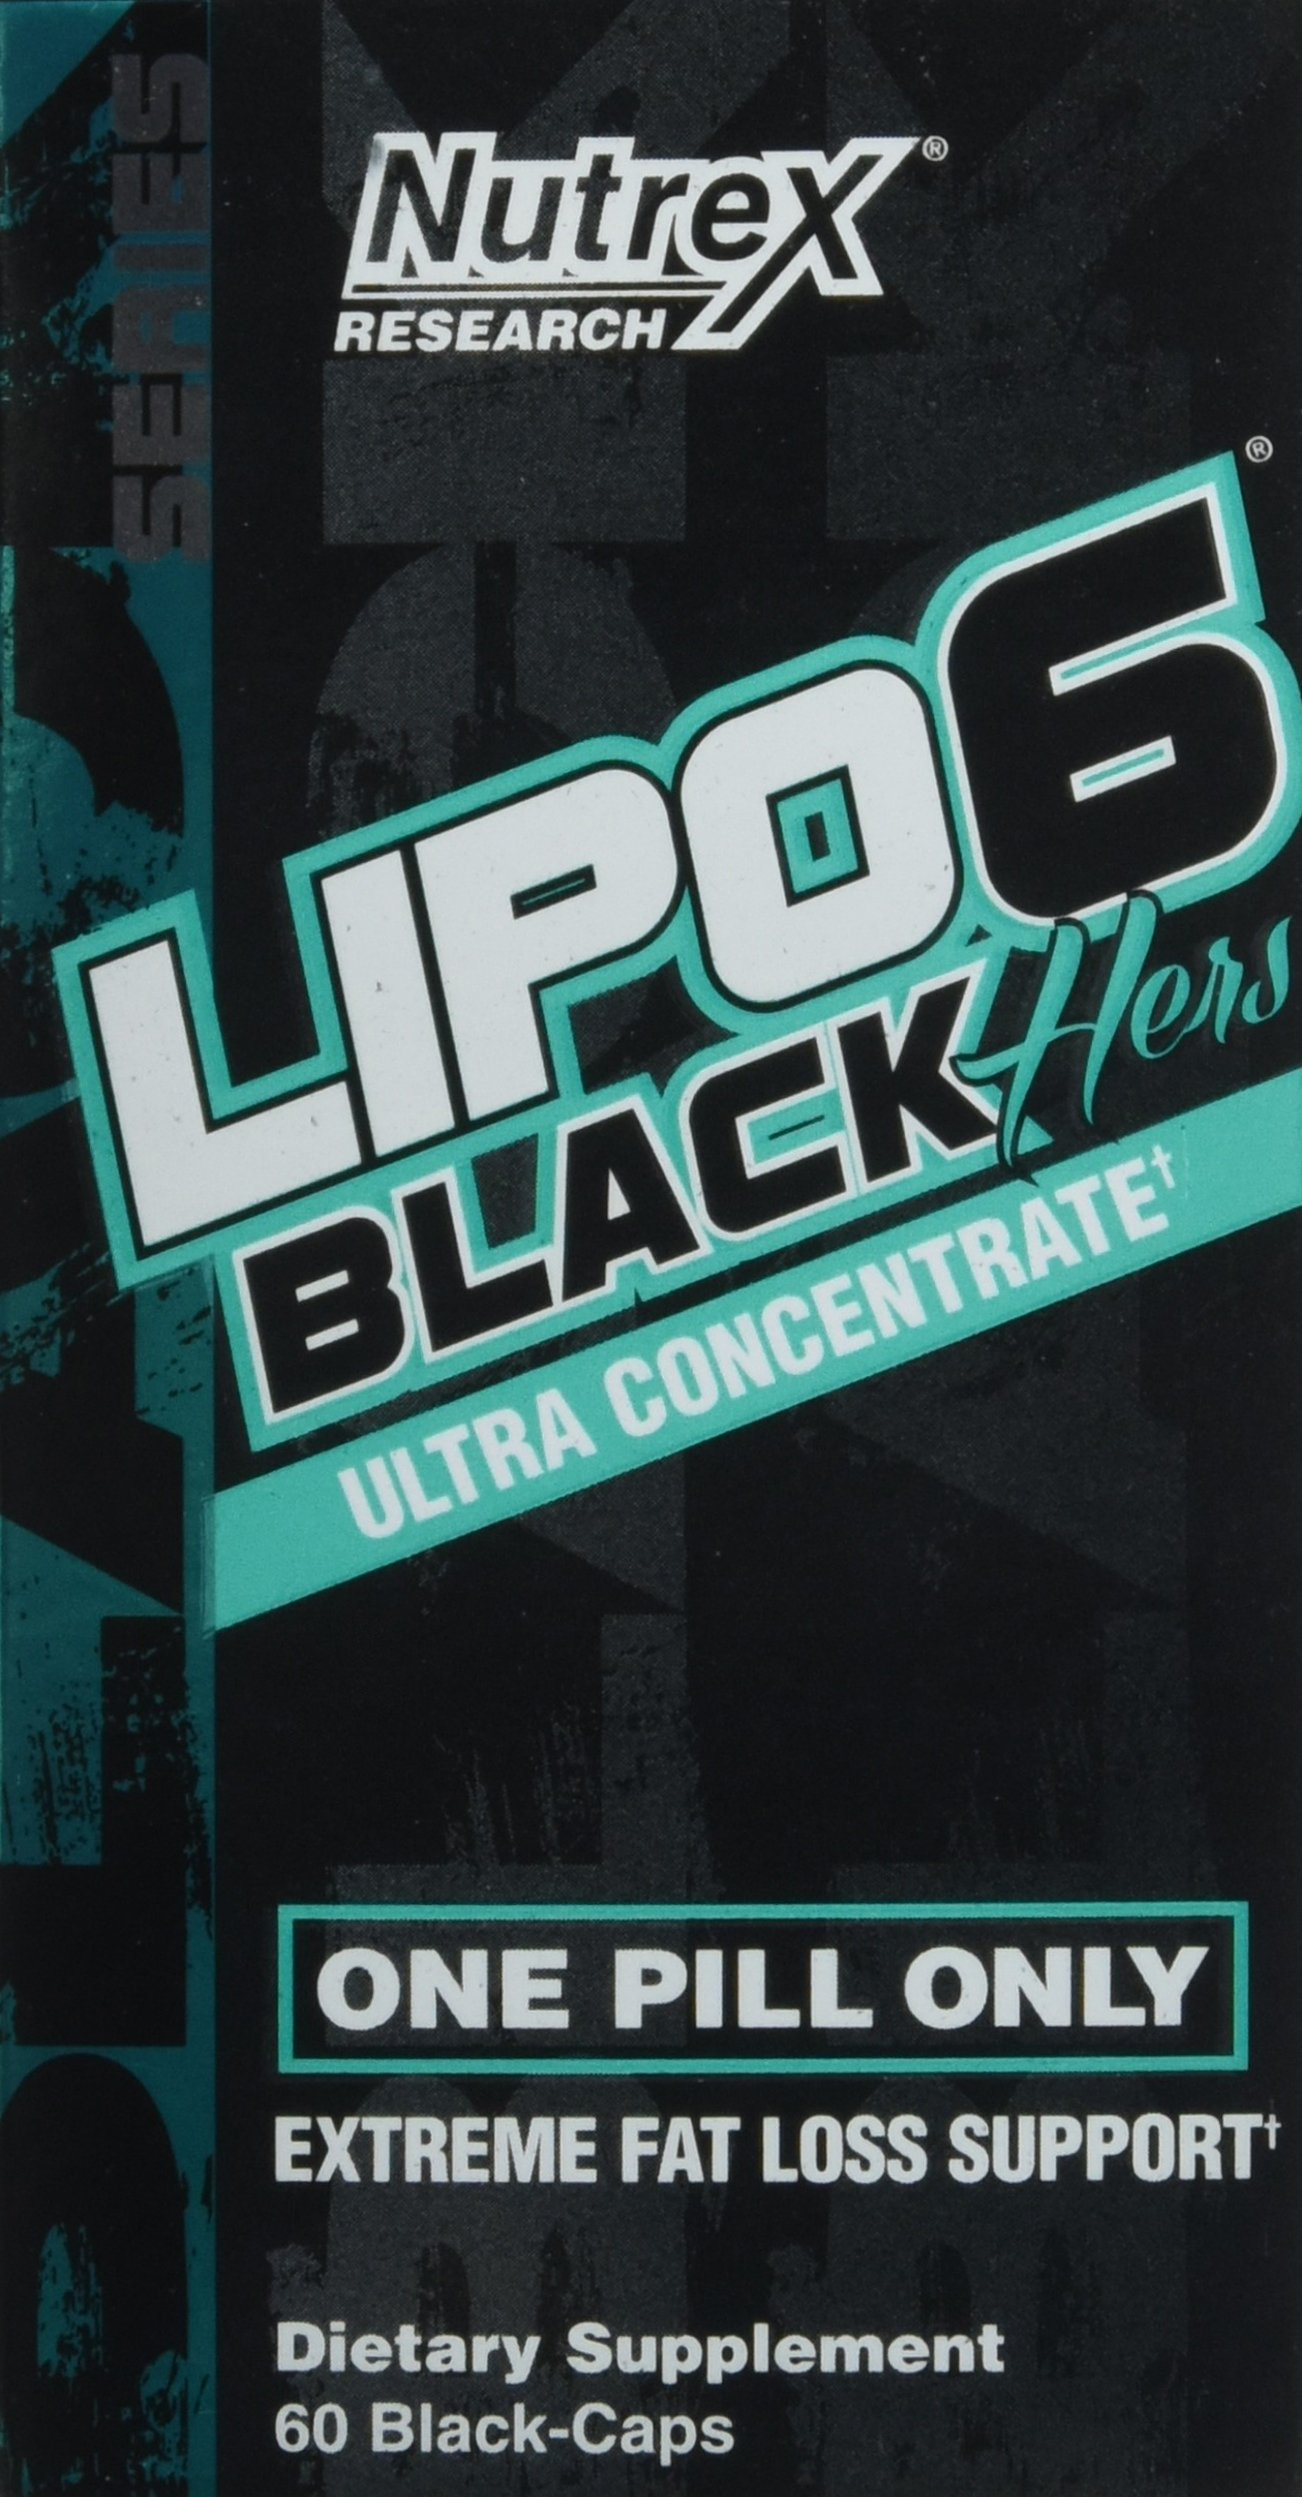 Nutrex Research Lipo-6 Black Hers Ultra Concentrate | Fat Burner Pills for Women | Hair, Skin, Nails Support | 60Count by Nutrex Research (Image #4)